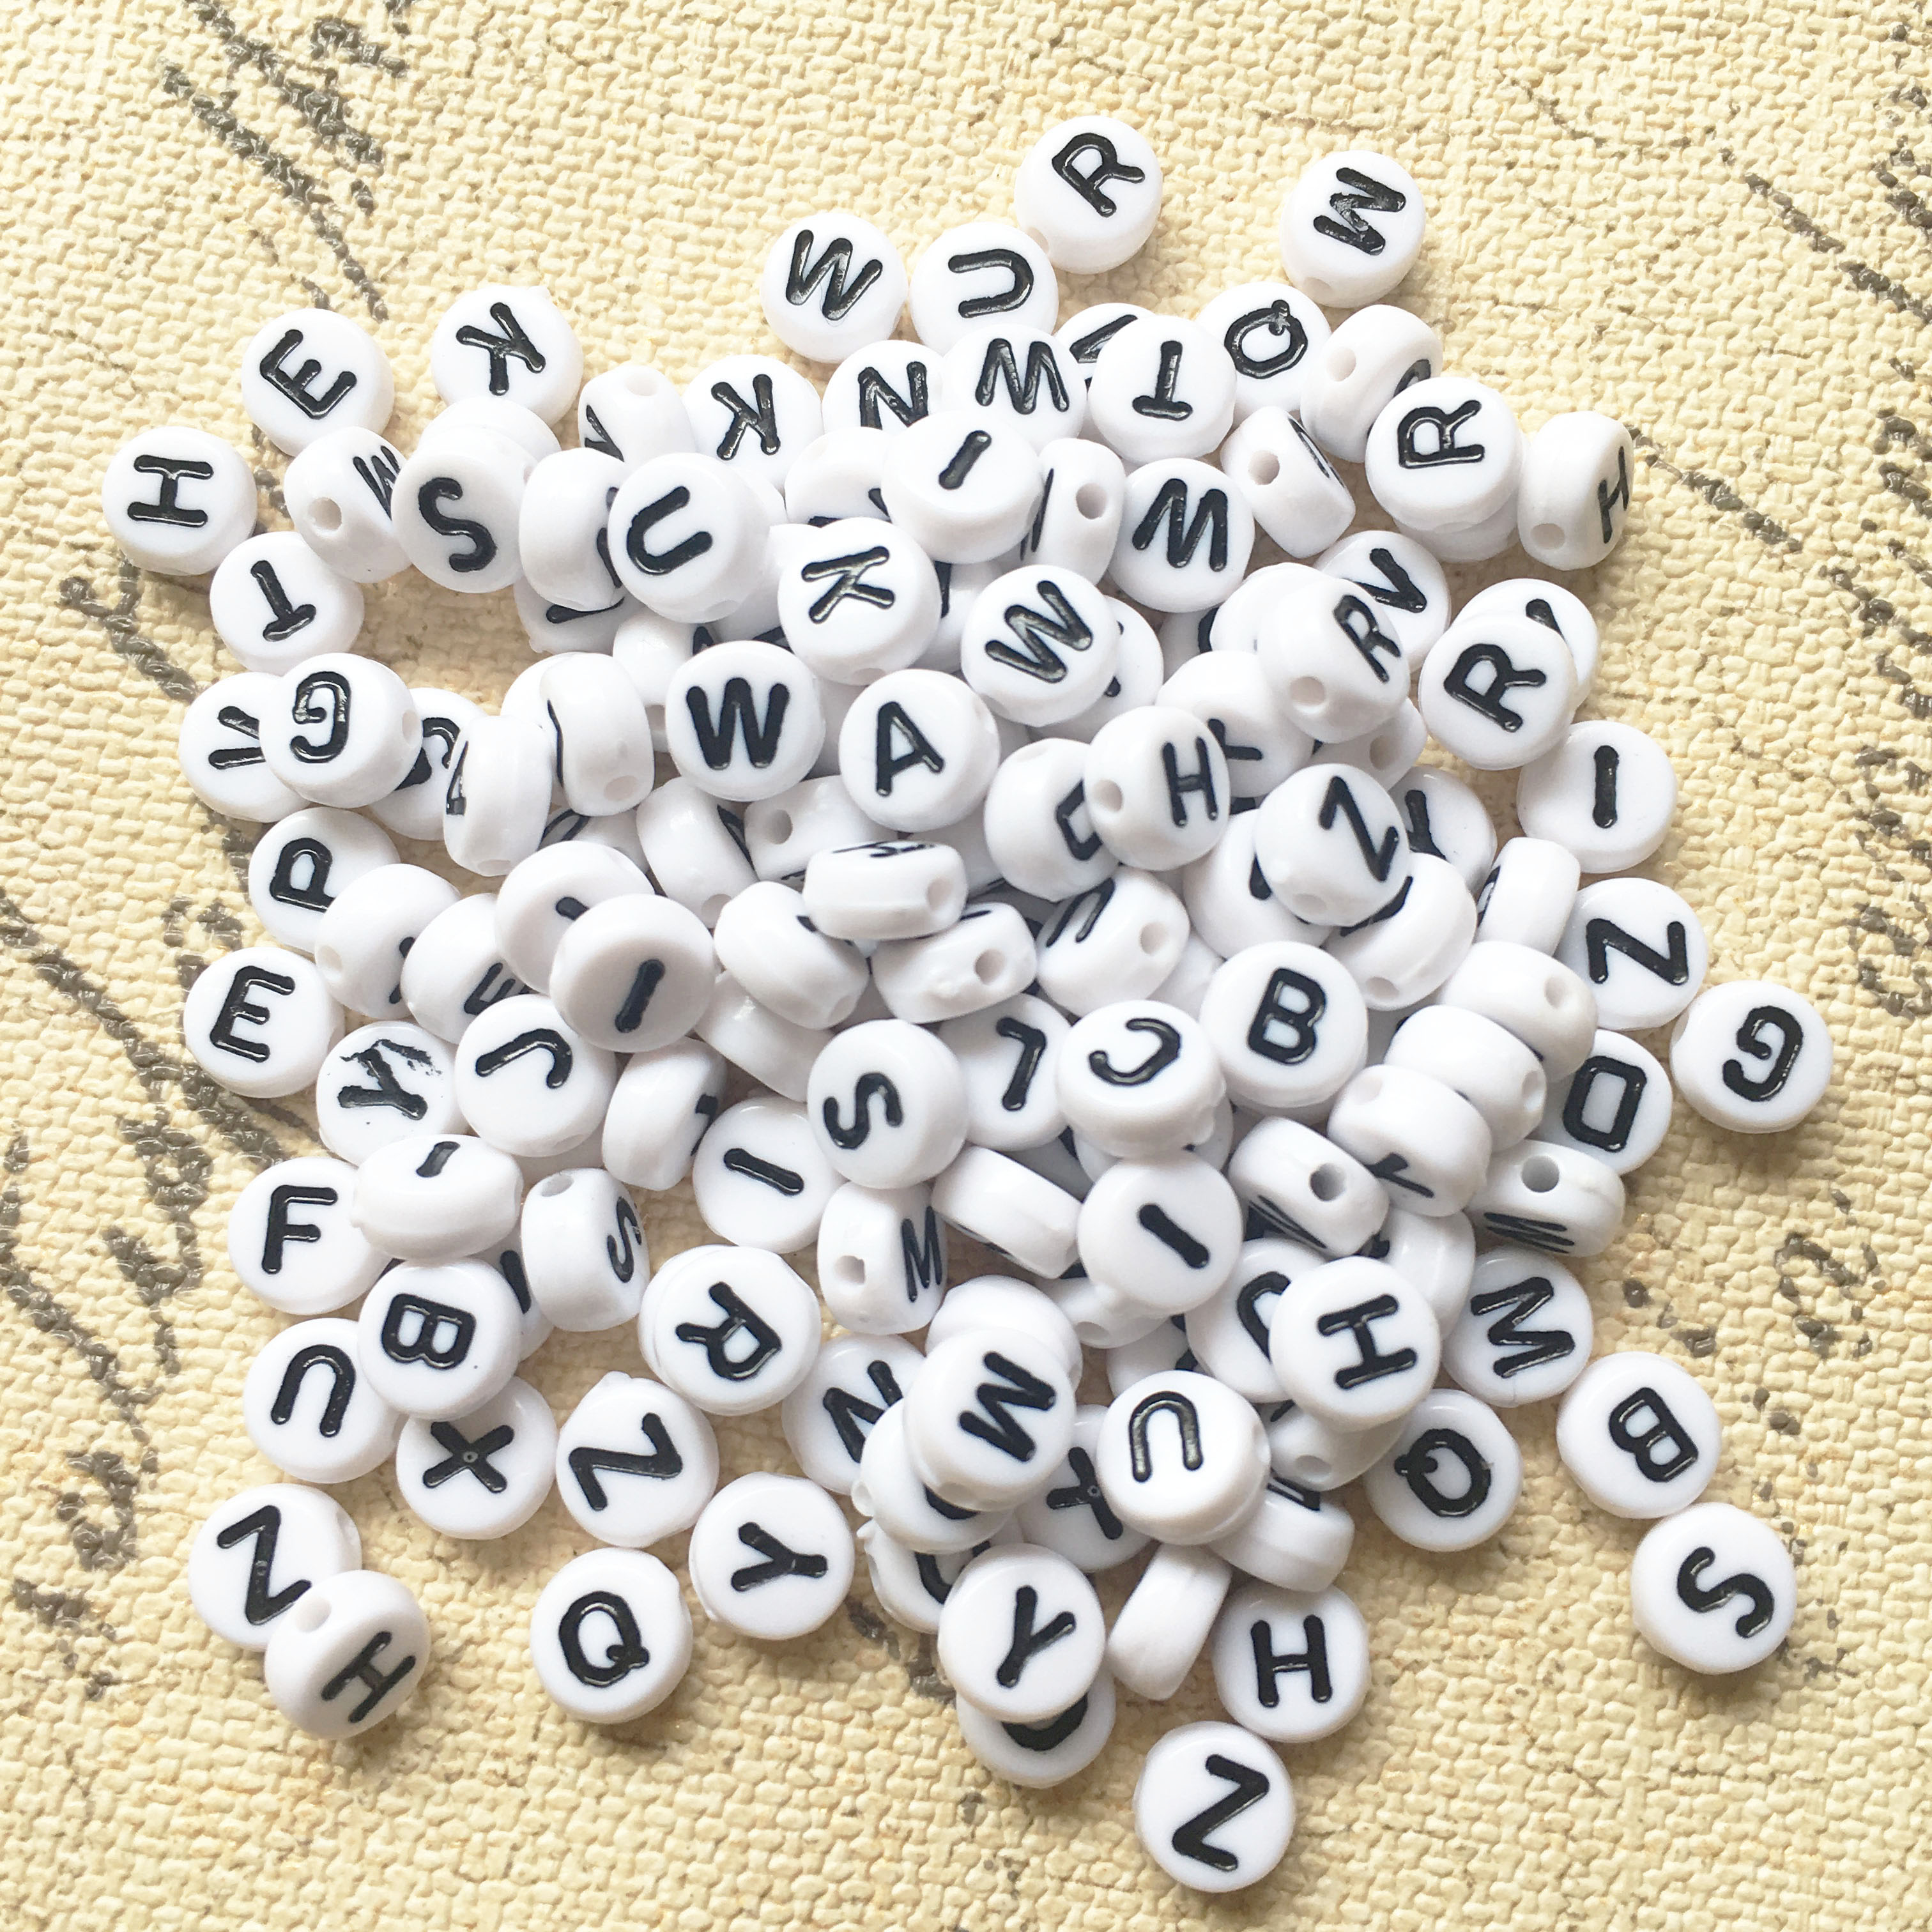 Mini Order 100pcs Acrylic Letter Beads 4 7mm White With Black